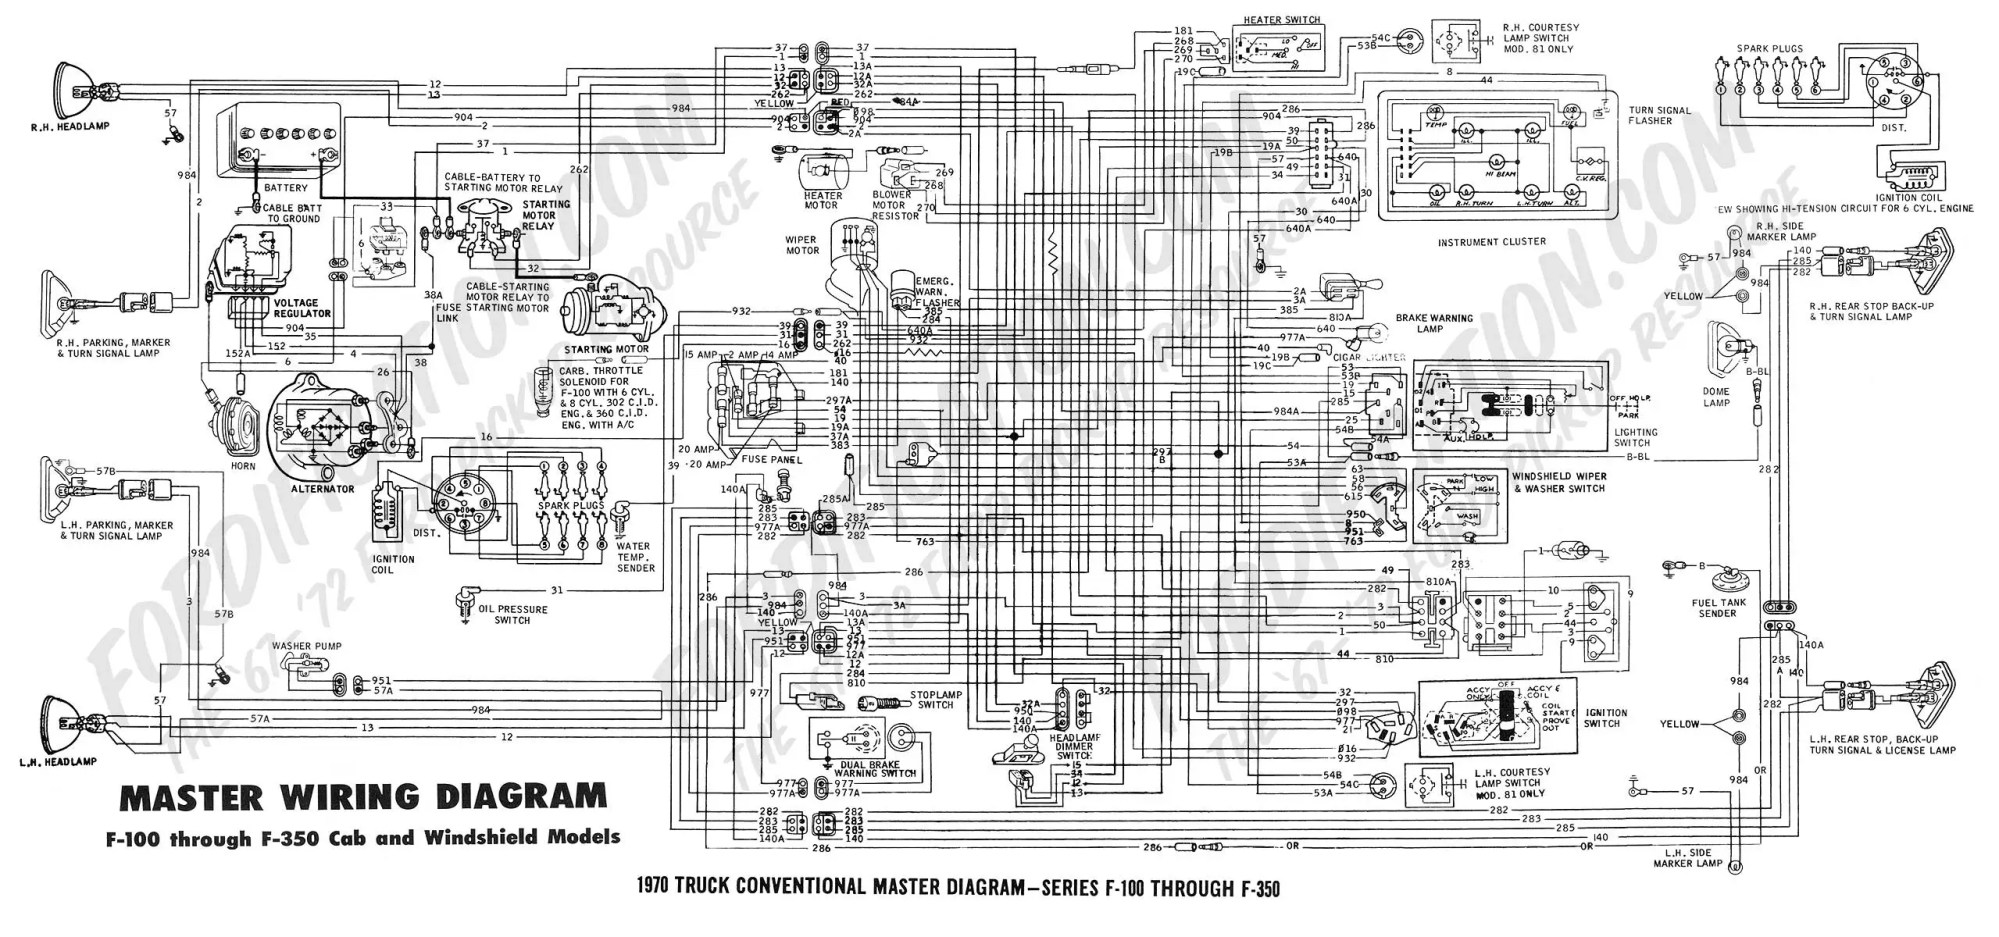 hight resolution of f250 wiring diagram detailed wiring diagram 1977 ford supercab 4x4 ford f 250 4x4 wiring